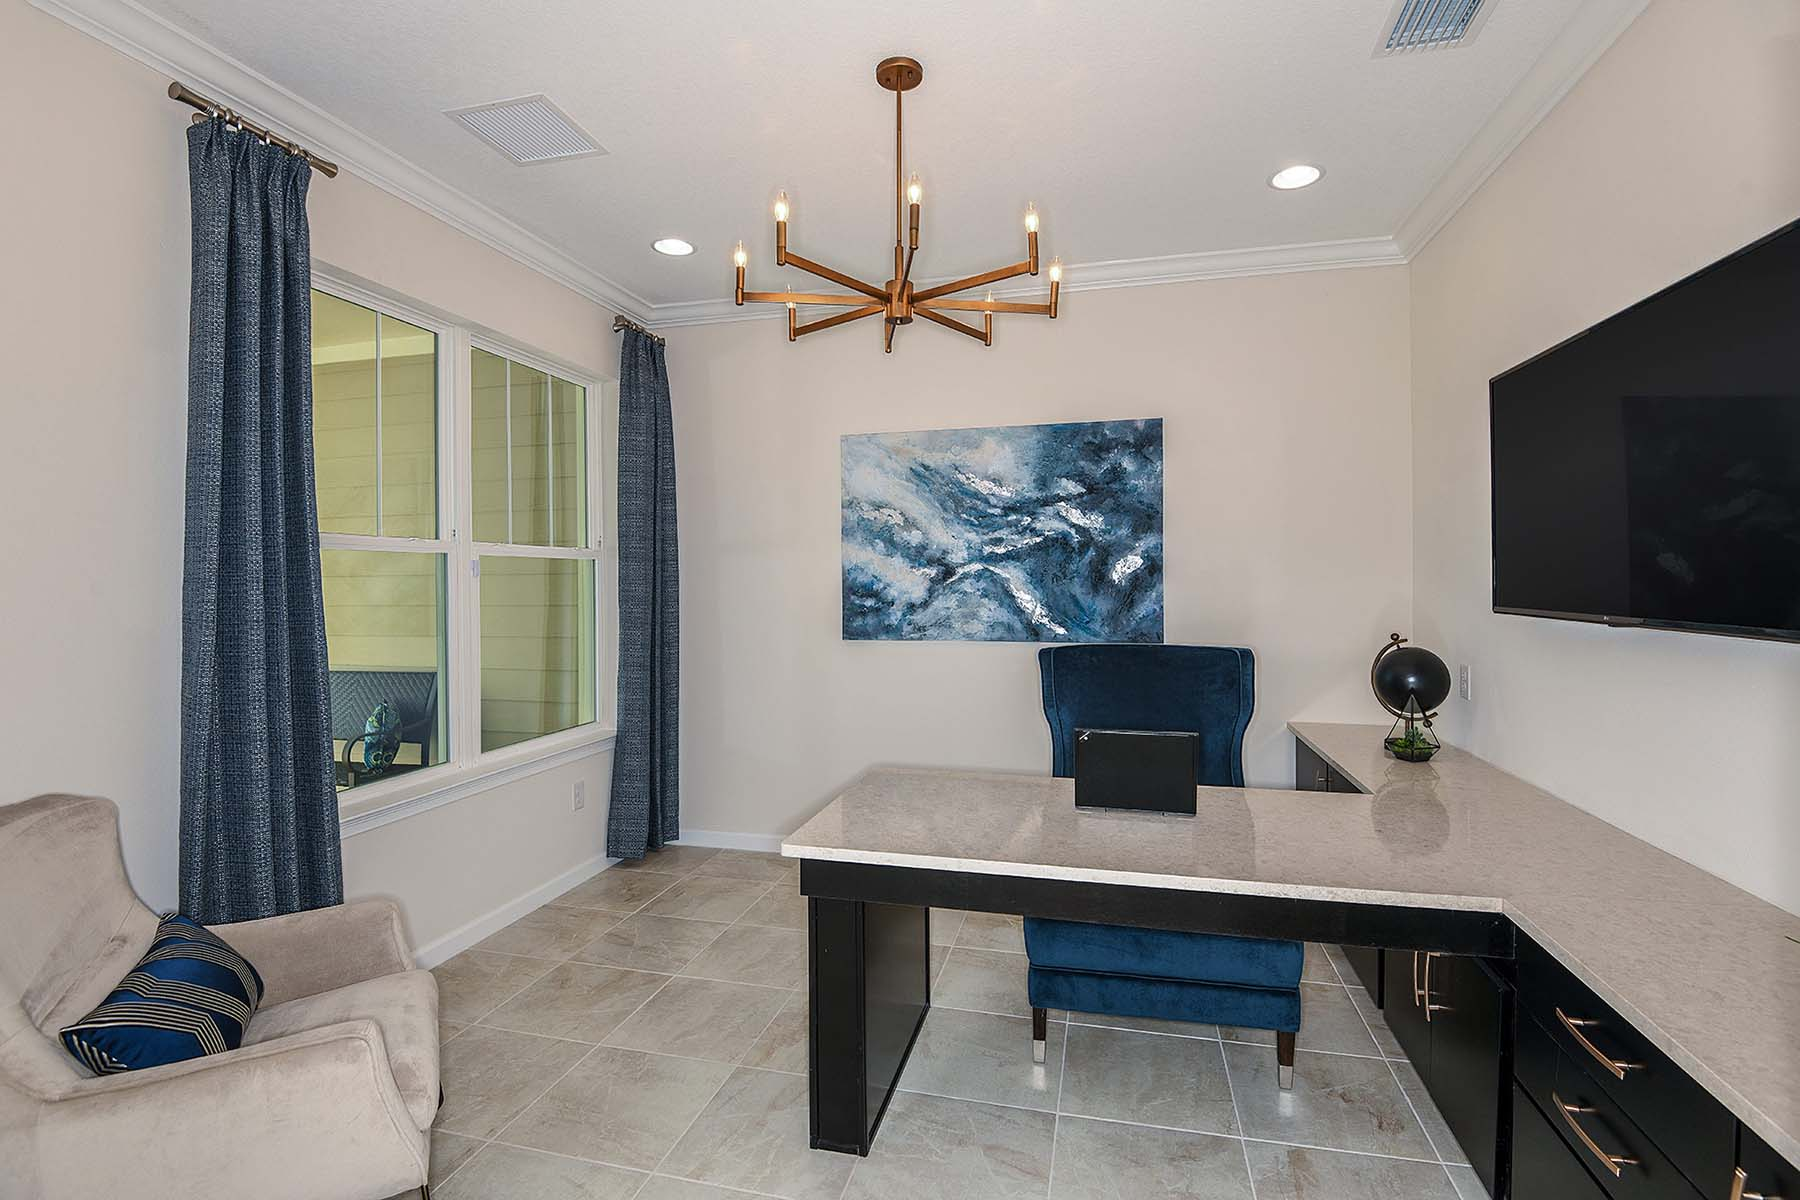 Bayport Plan Study Room at Sunrise Preserve at Palmer Ranch in Sarasota Florida by Mattamy Homes